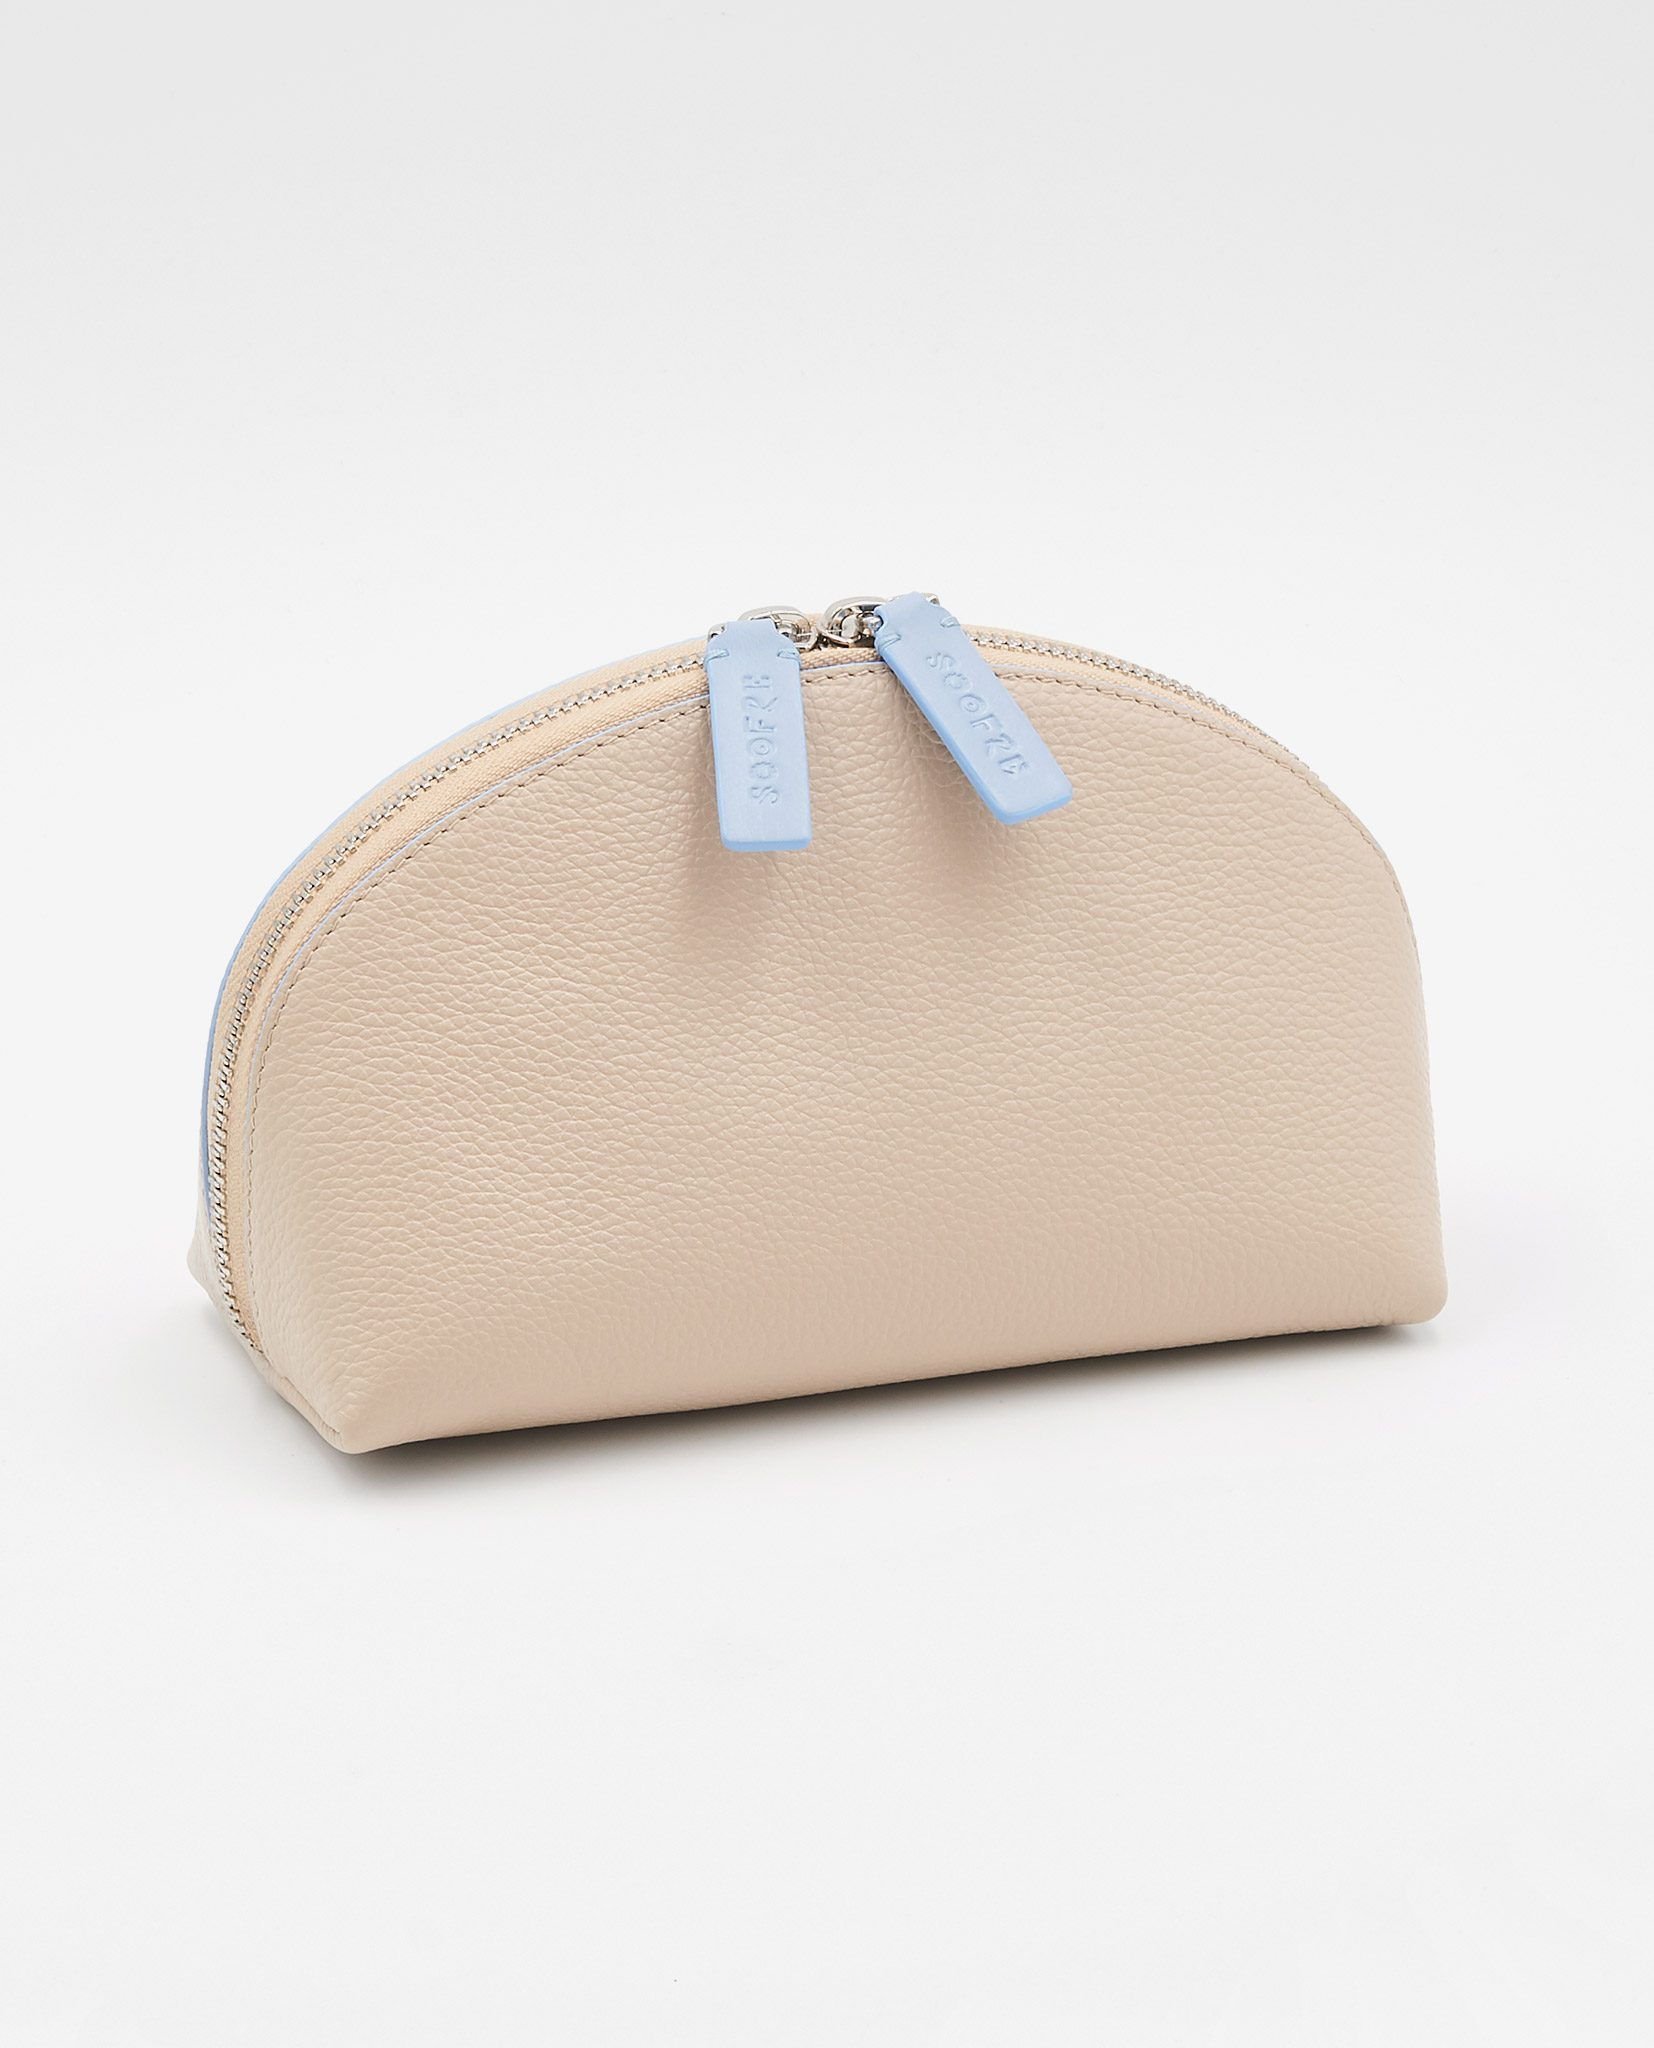 Soofre Grainy Leather Cosmetic Bag Cream Pale Blue